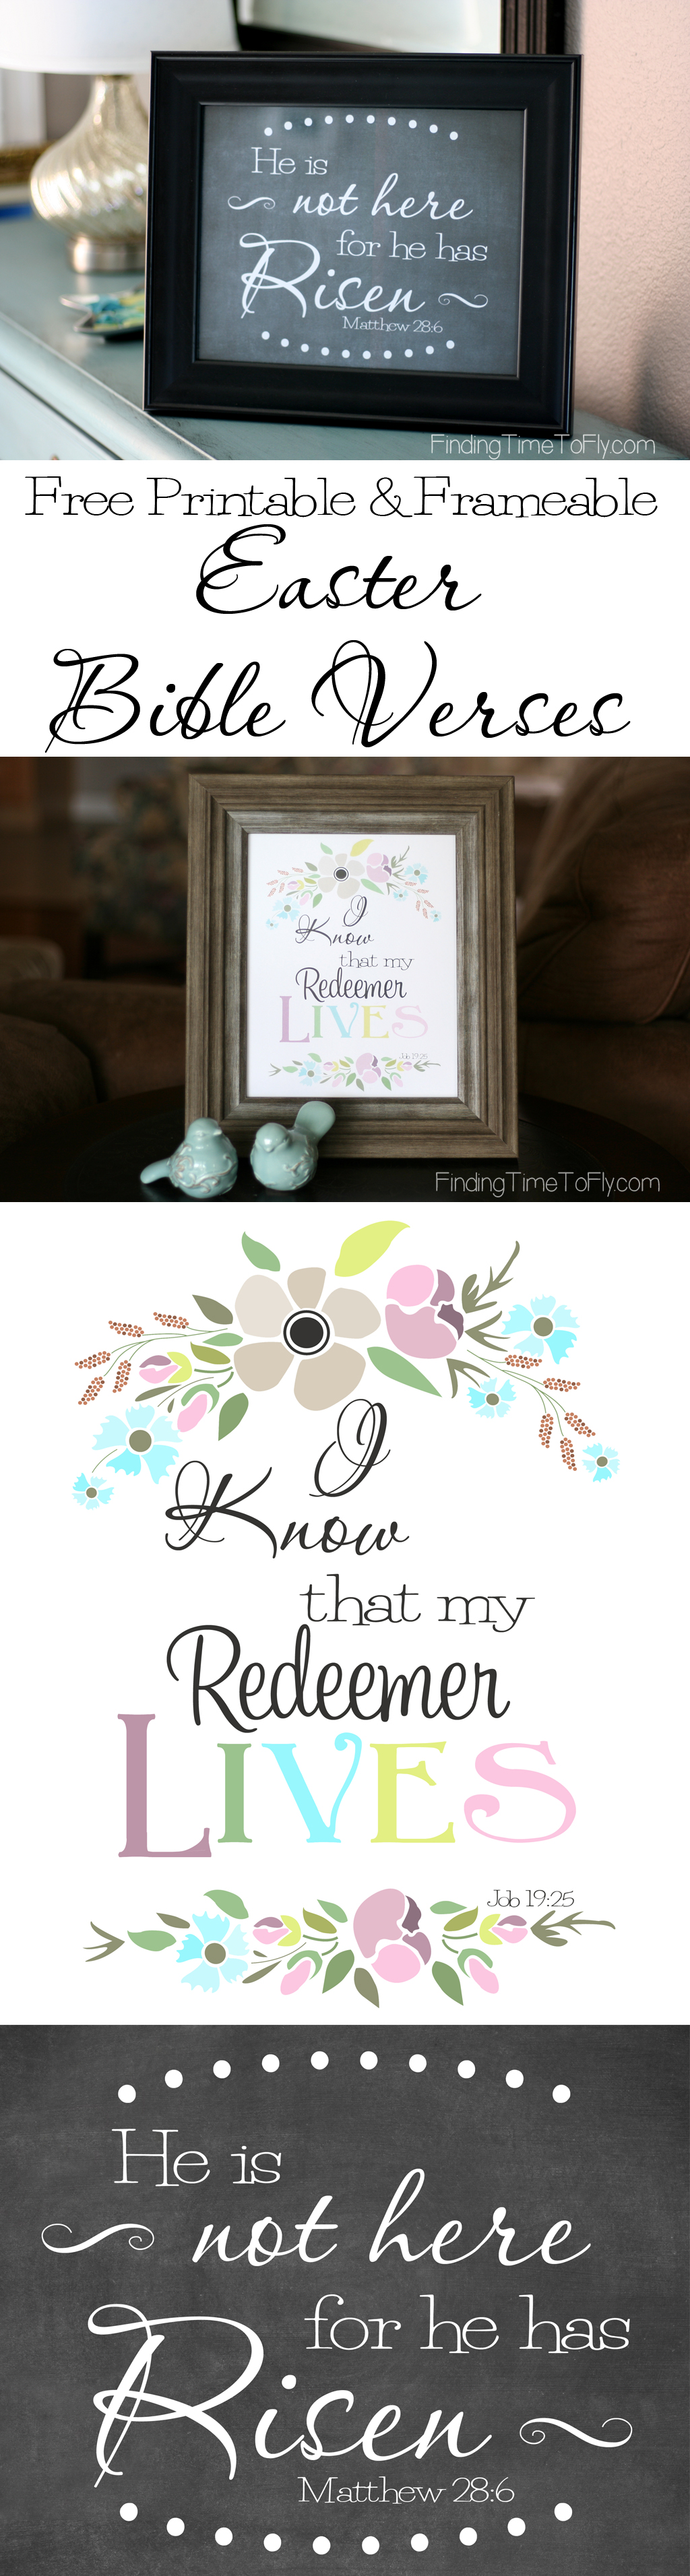 Free Printable Bible Verse for Easter - He Has Risen and Redeemer ...